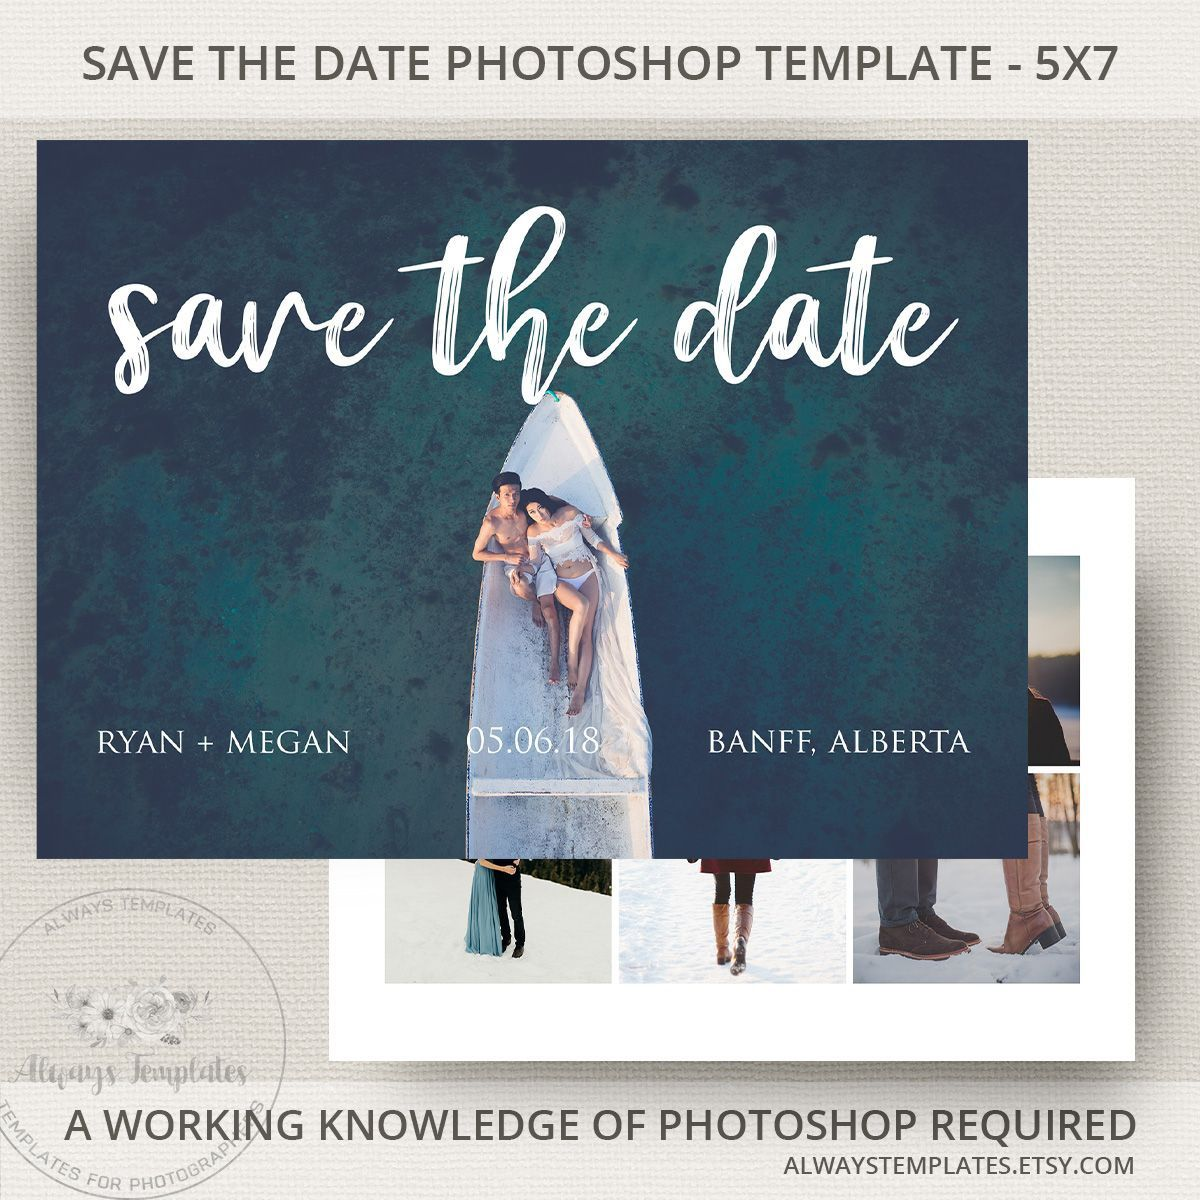 000 Top Save The Date Template Photoshop Photo  Adobe CardFull